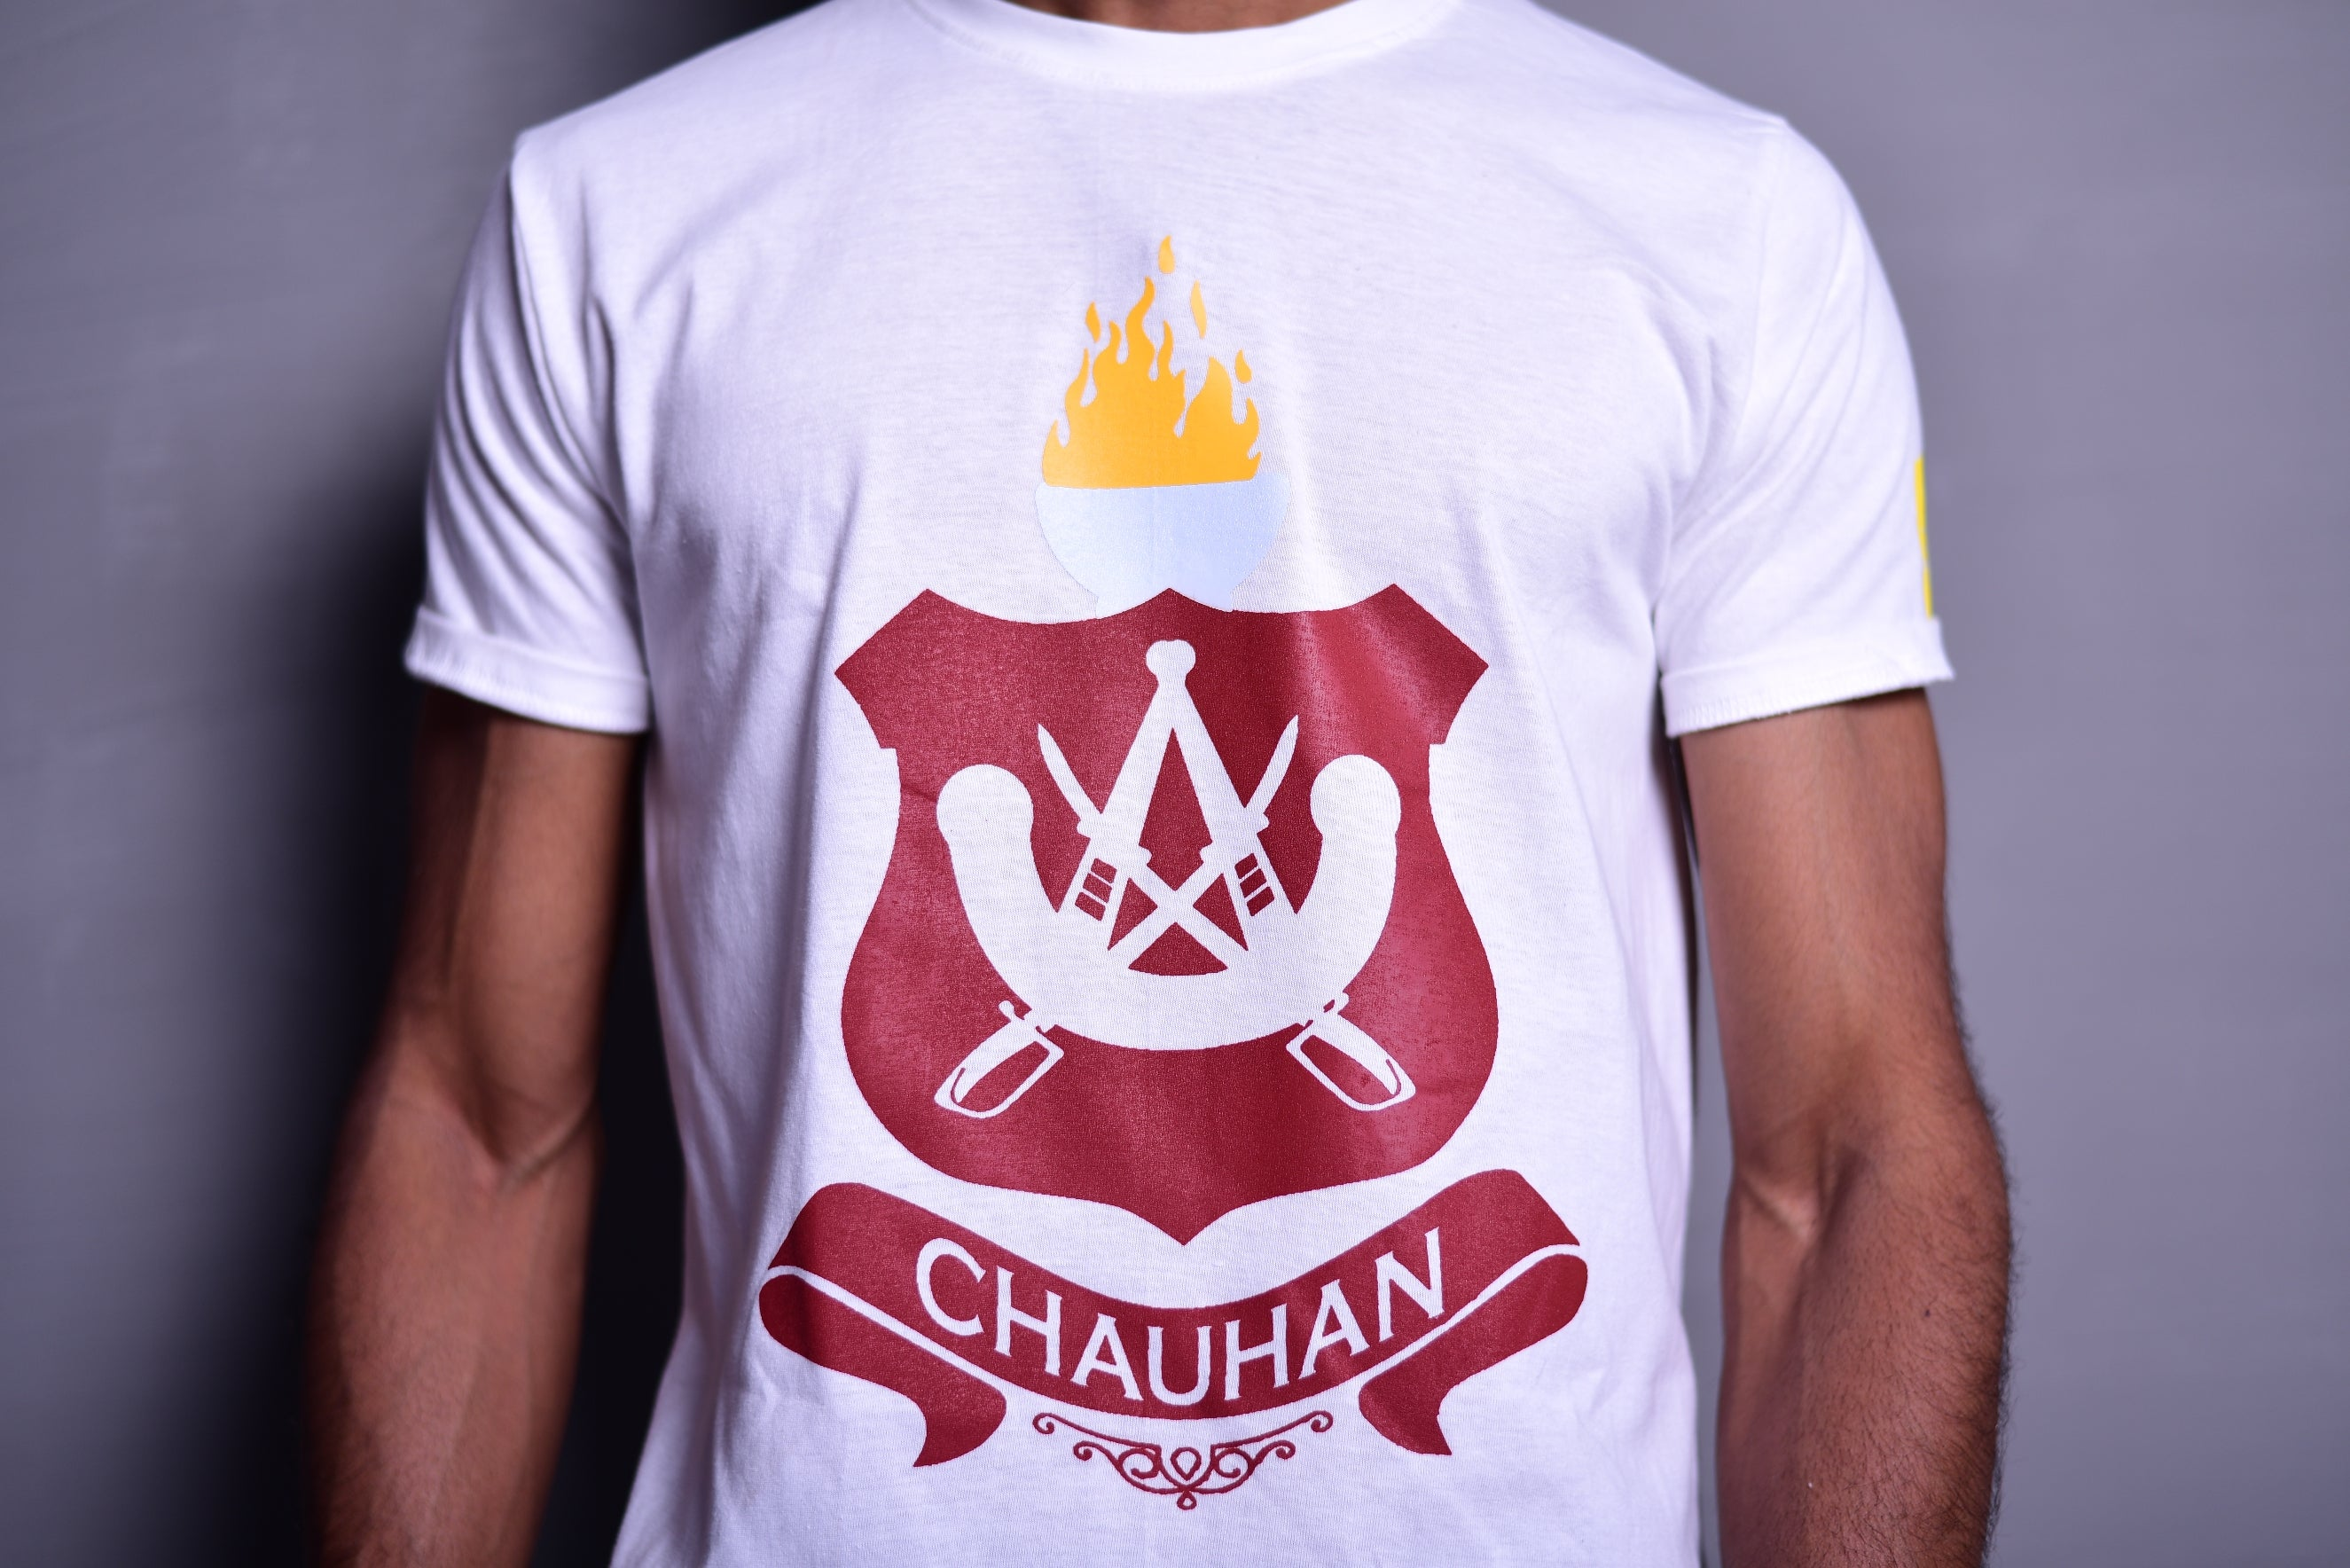 Chauhan Clan Round Neck T-shirt